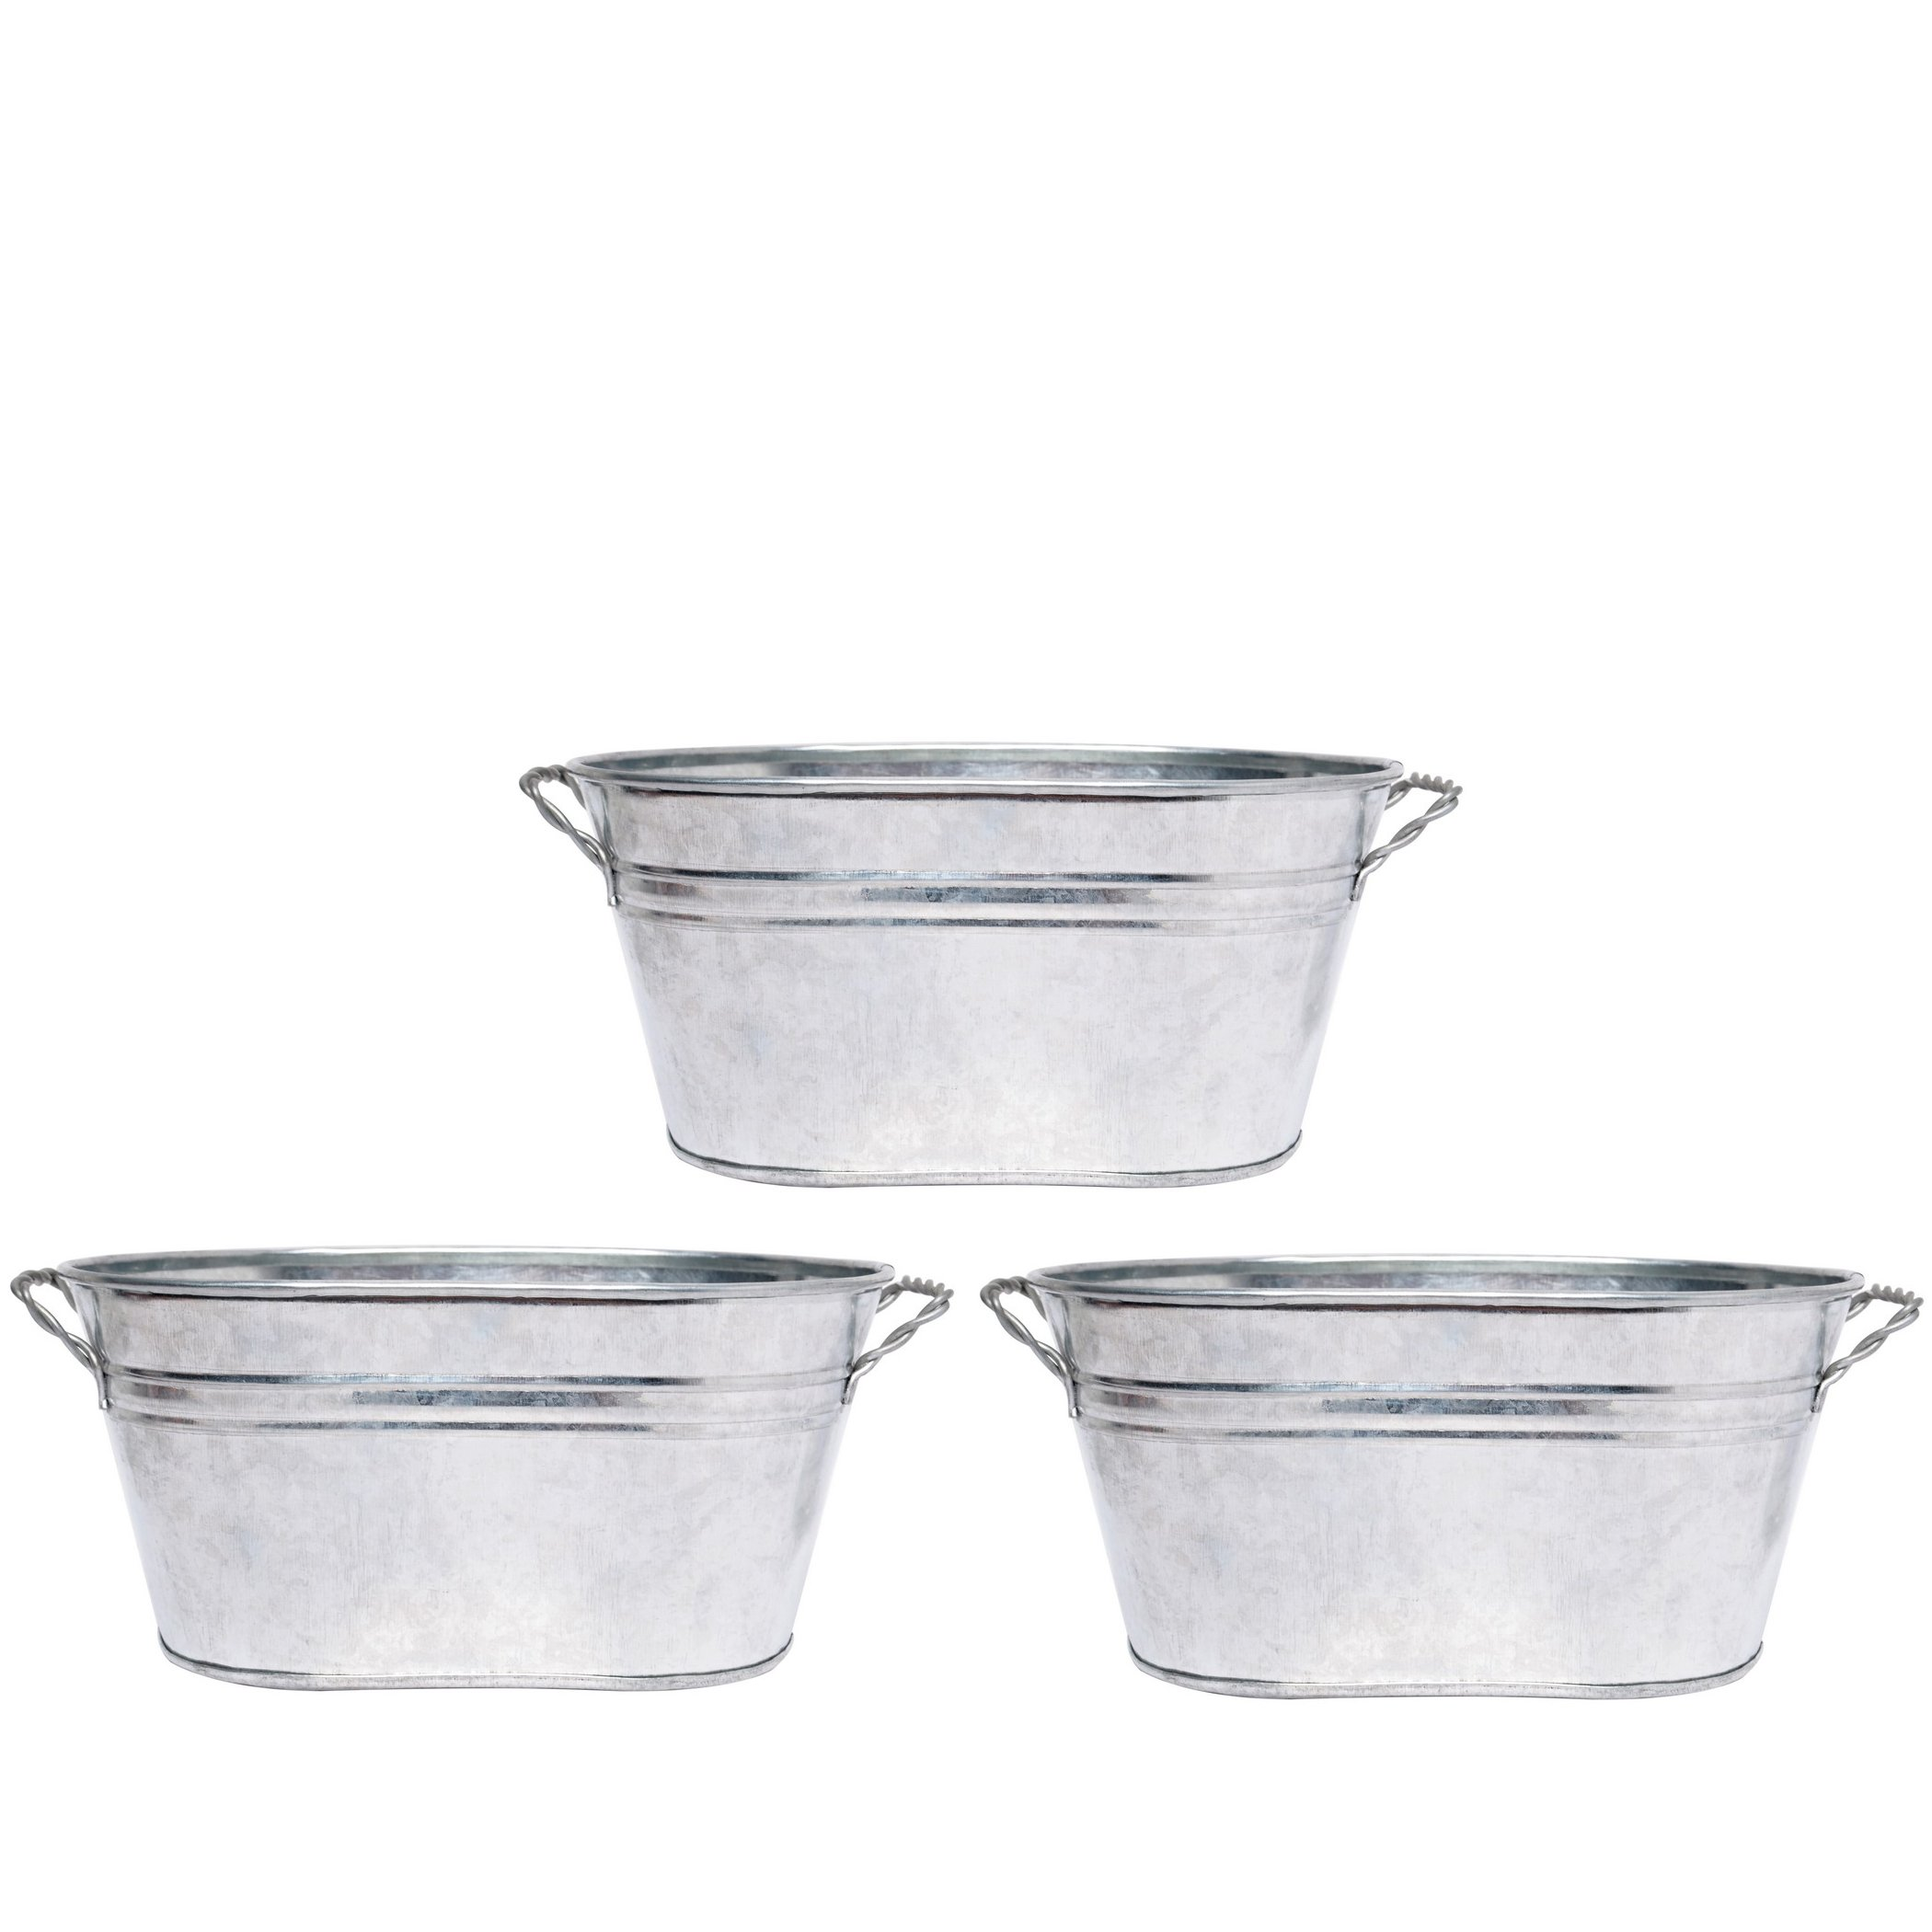 Hosley 3 Pack of Galvanized Oval Planters - 8'' Long. Ideal Gift and Use for Weddings, Special Events, Parties, Outside Planters. W9